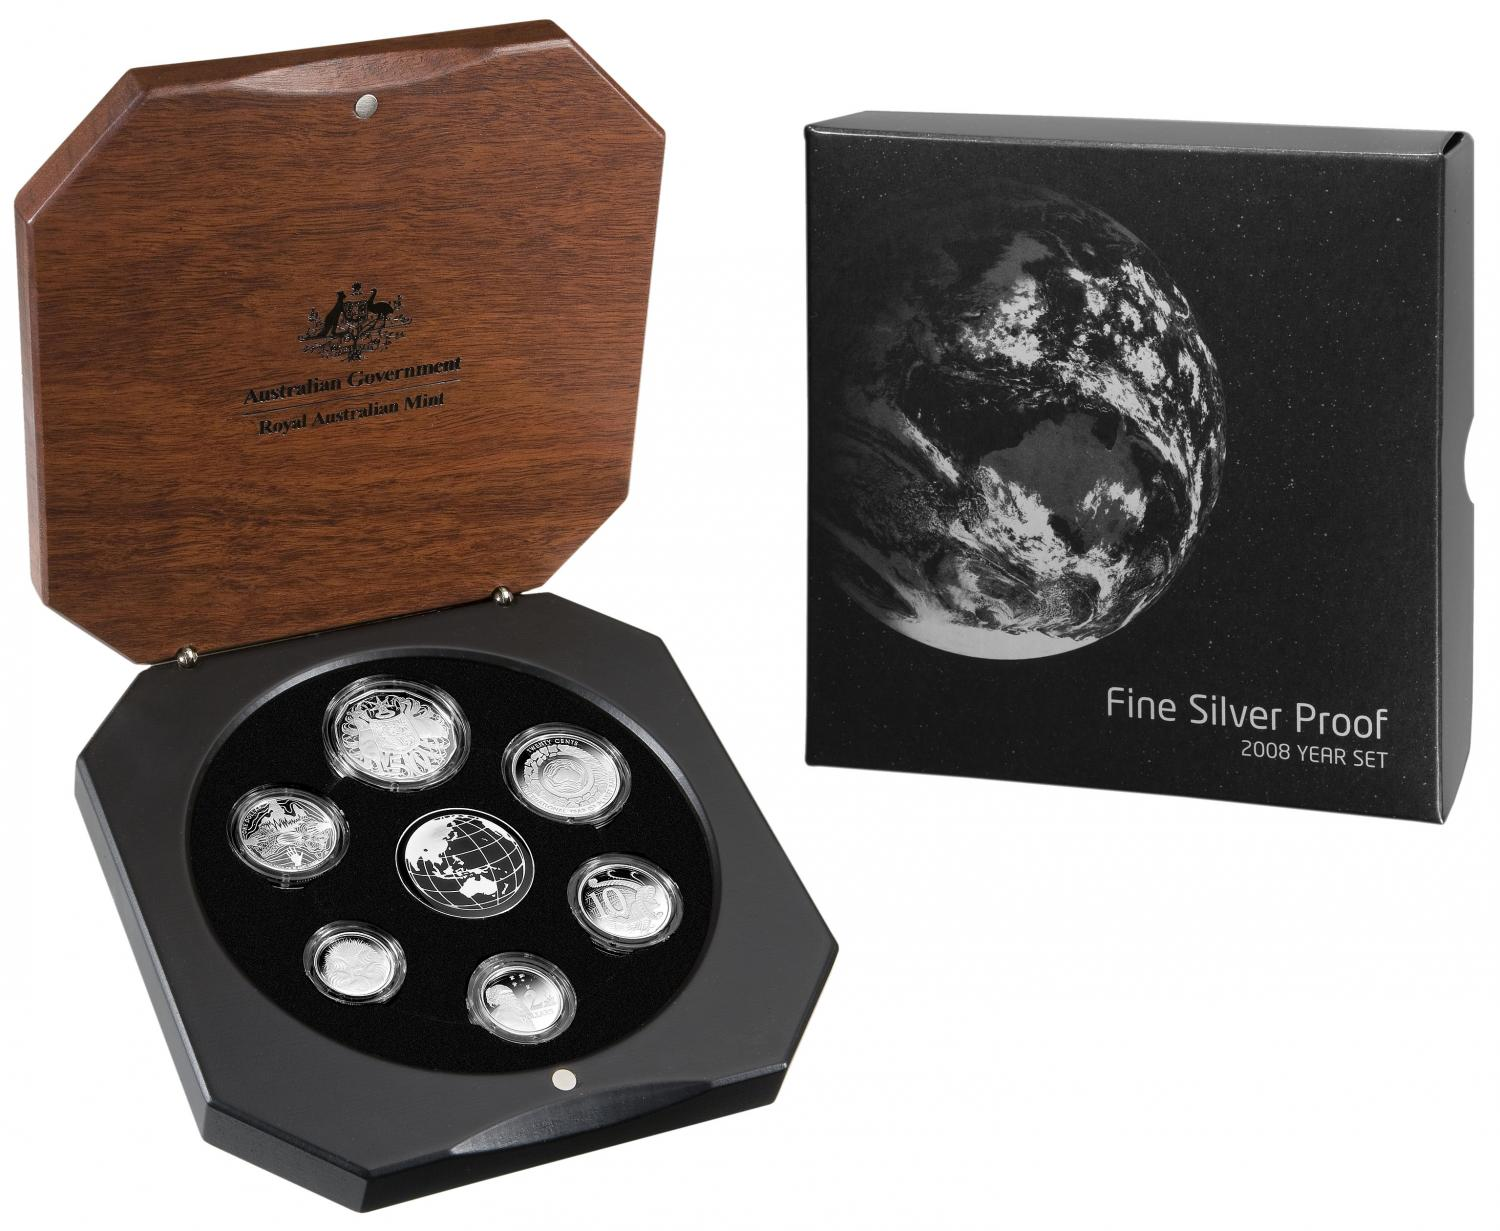 Thumbnail for 2008 Australian Fine Silver Proof Set